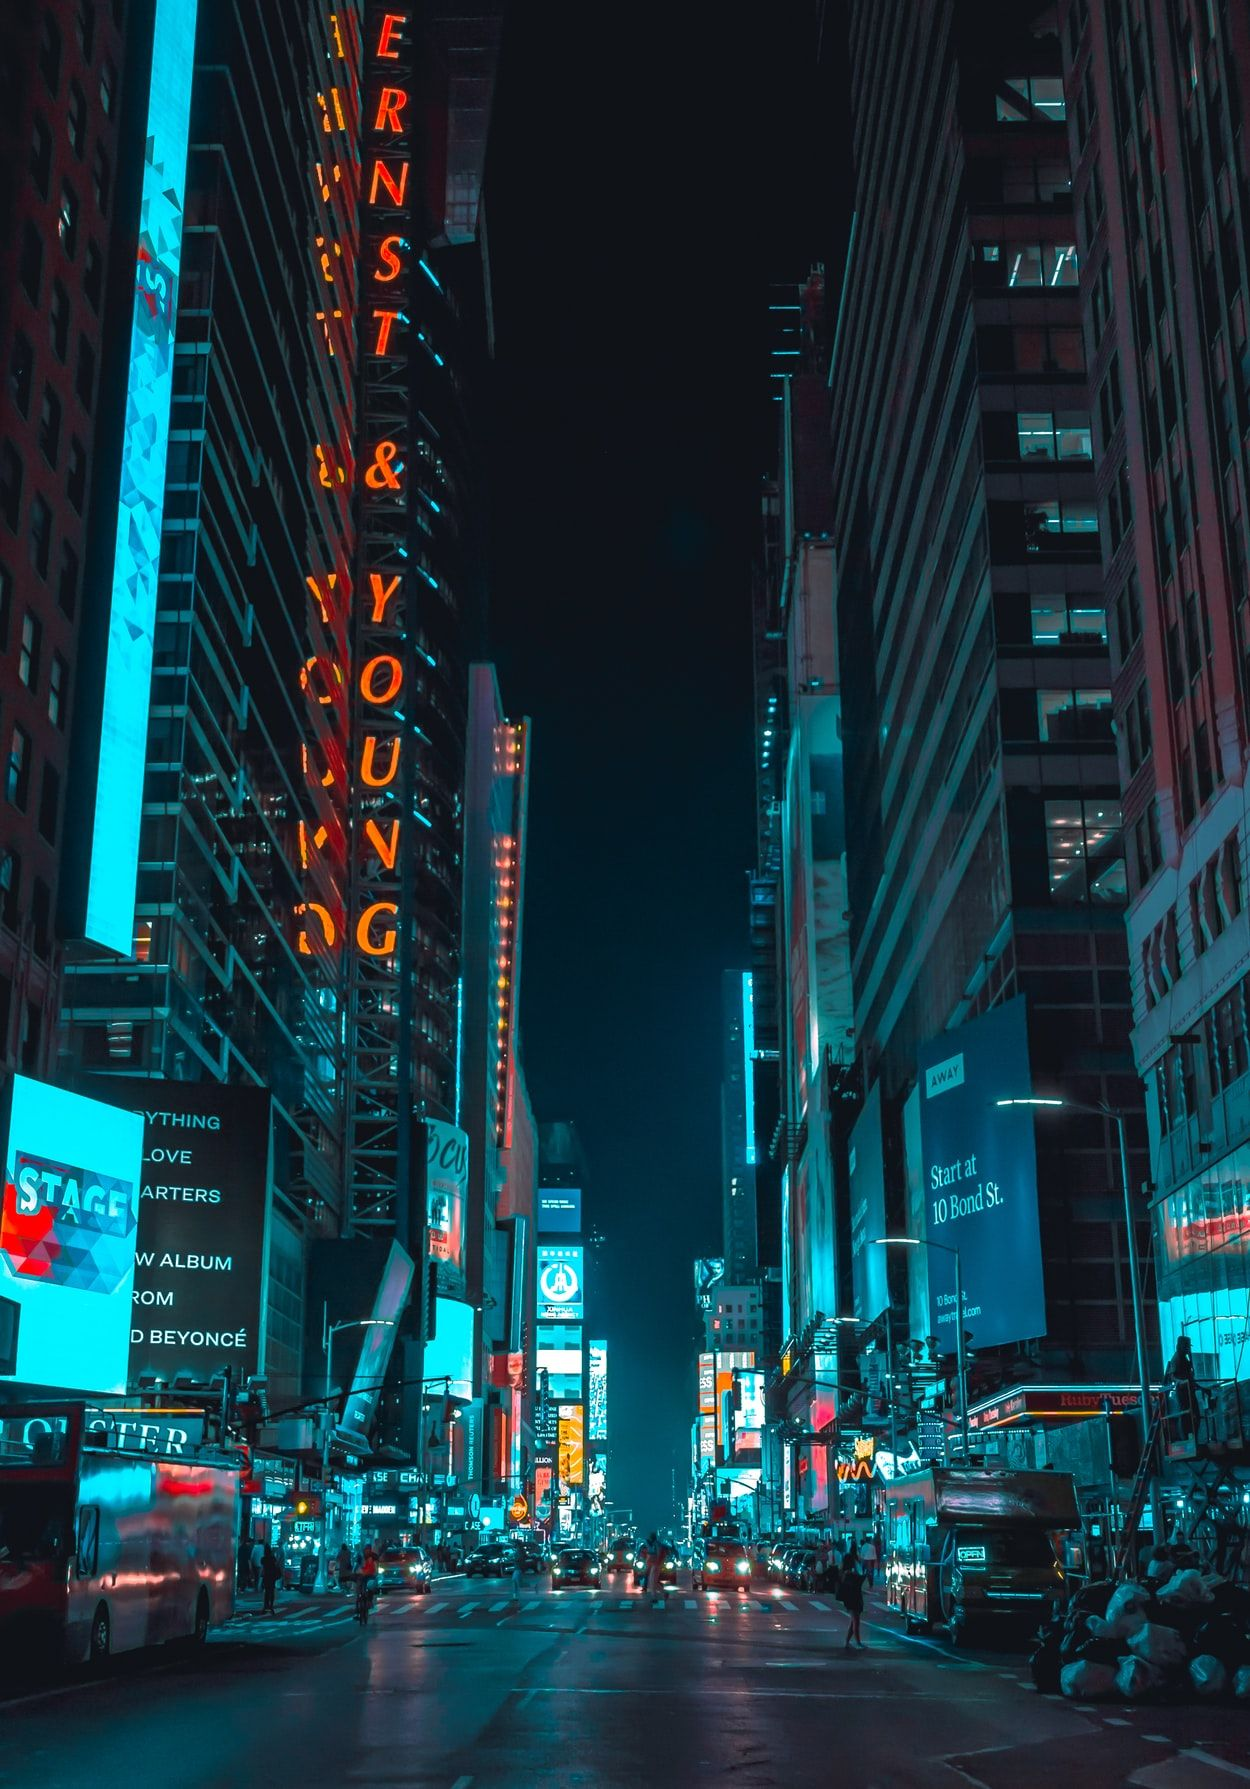 Beautiful City Lights Looked Like Som Hd Photo By Wilmer Martinez Wilmerlens On Unsplash City Aesthetic Street Photography Cyberpunk Aesthetic